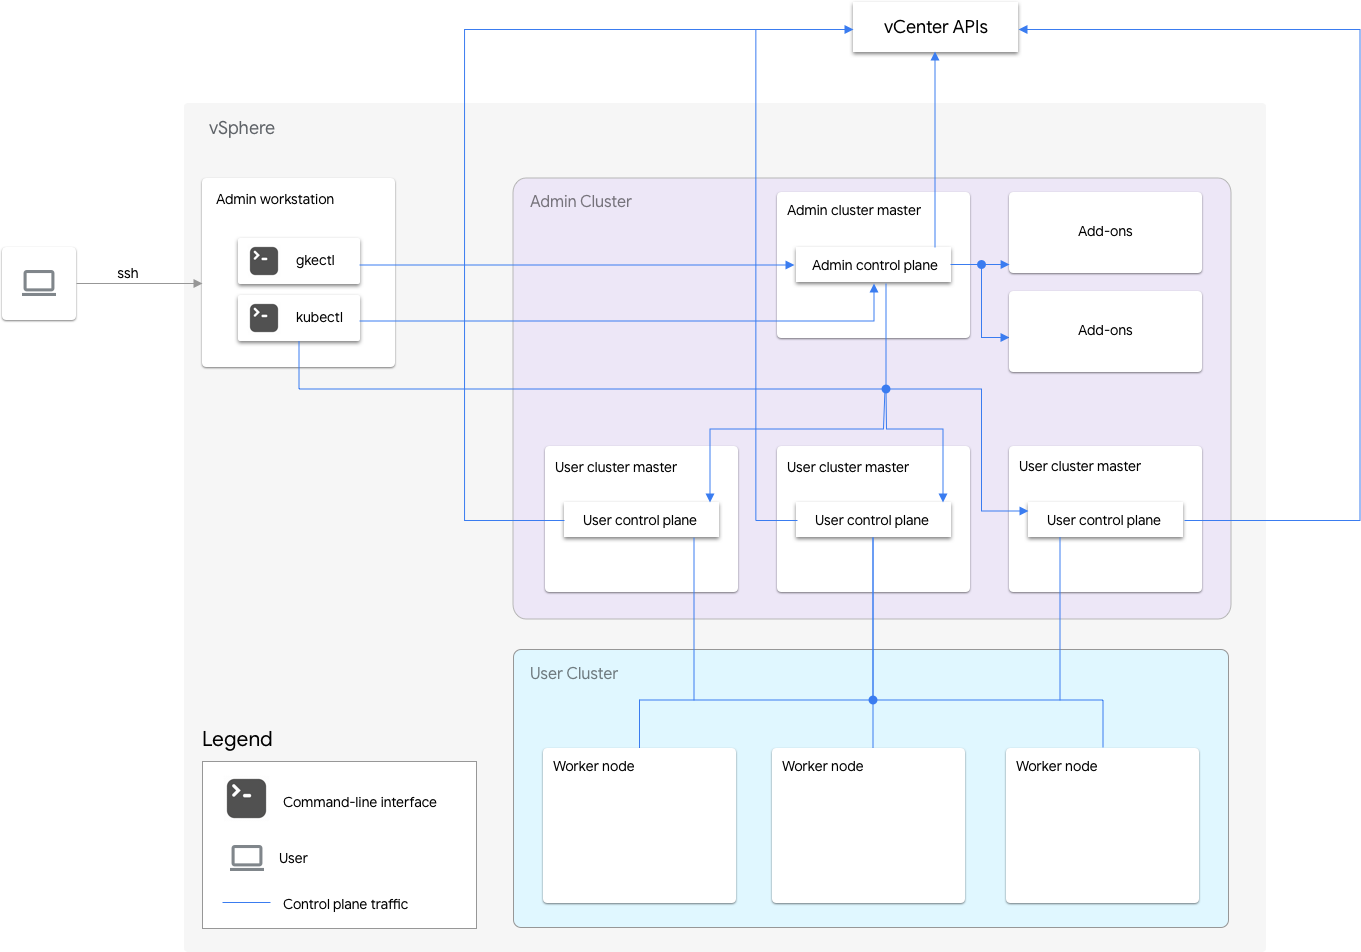 GKE on-prem architecture with highly-available user clusters